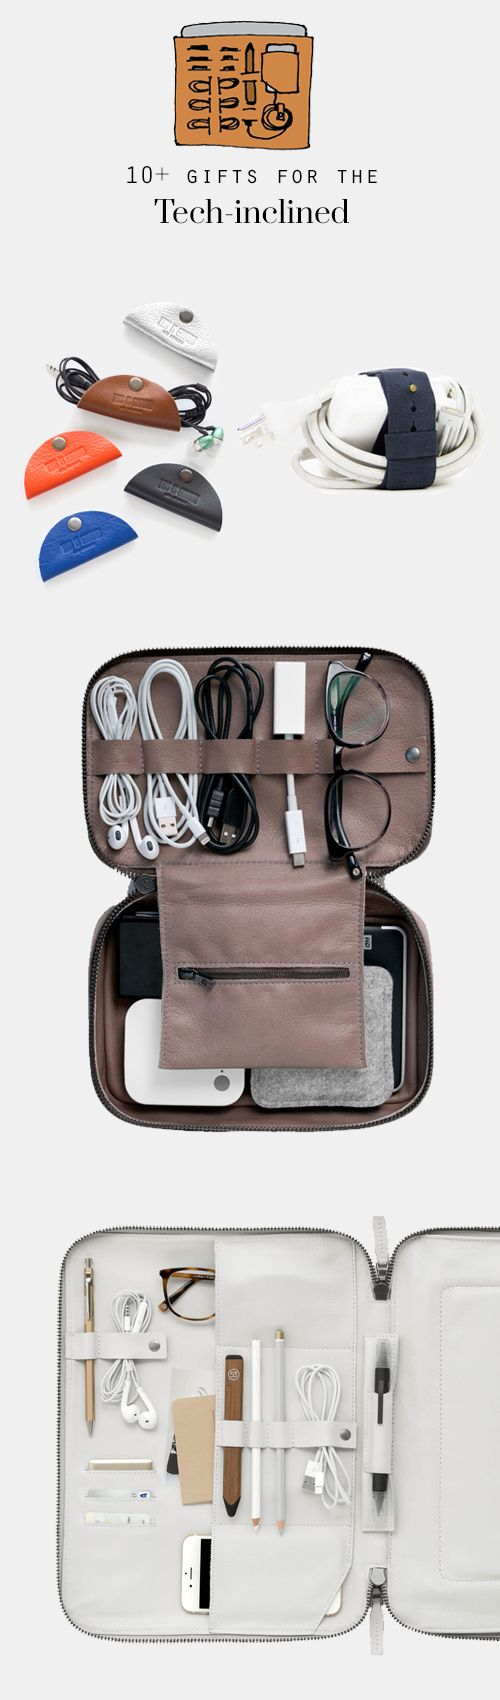 best gifts for anyone who has to carry and organize today's tech -> cords, laptops, iPads...